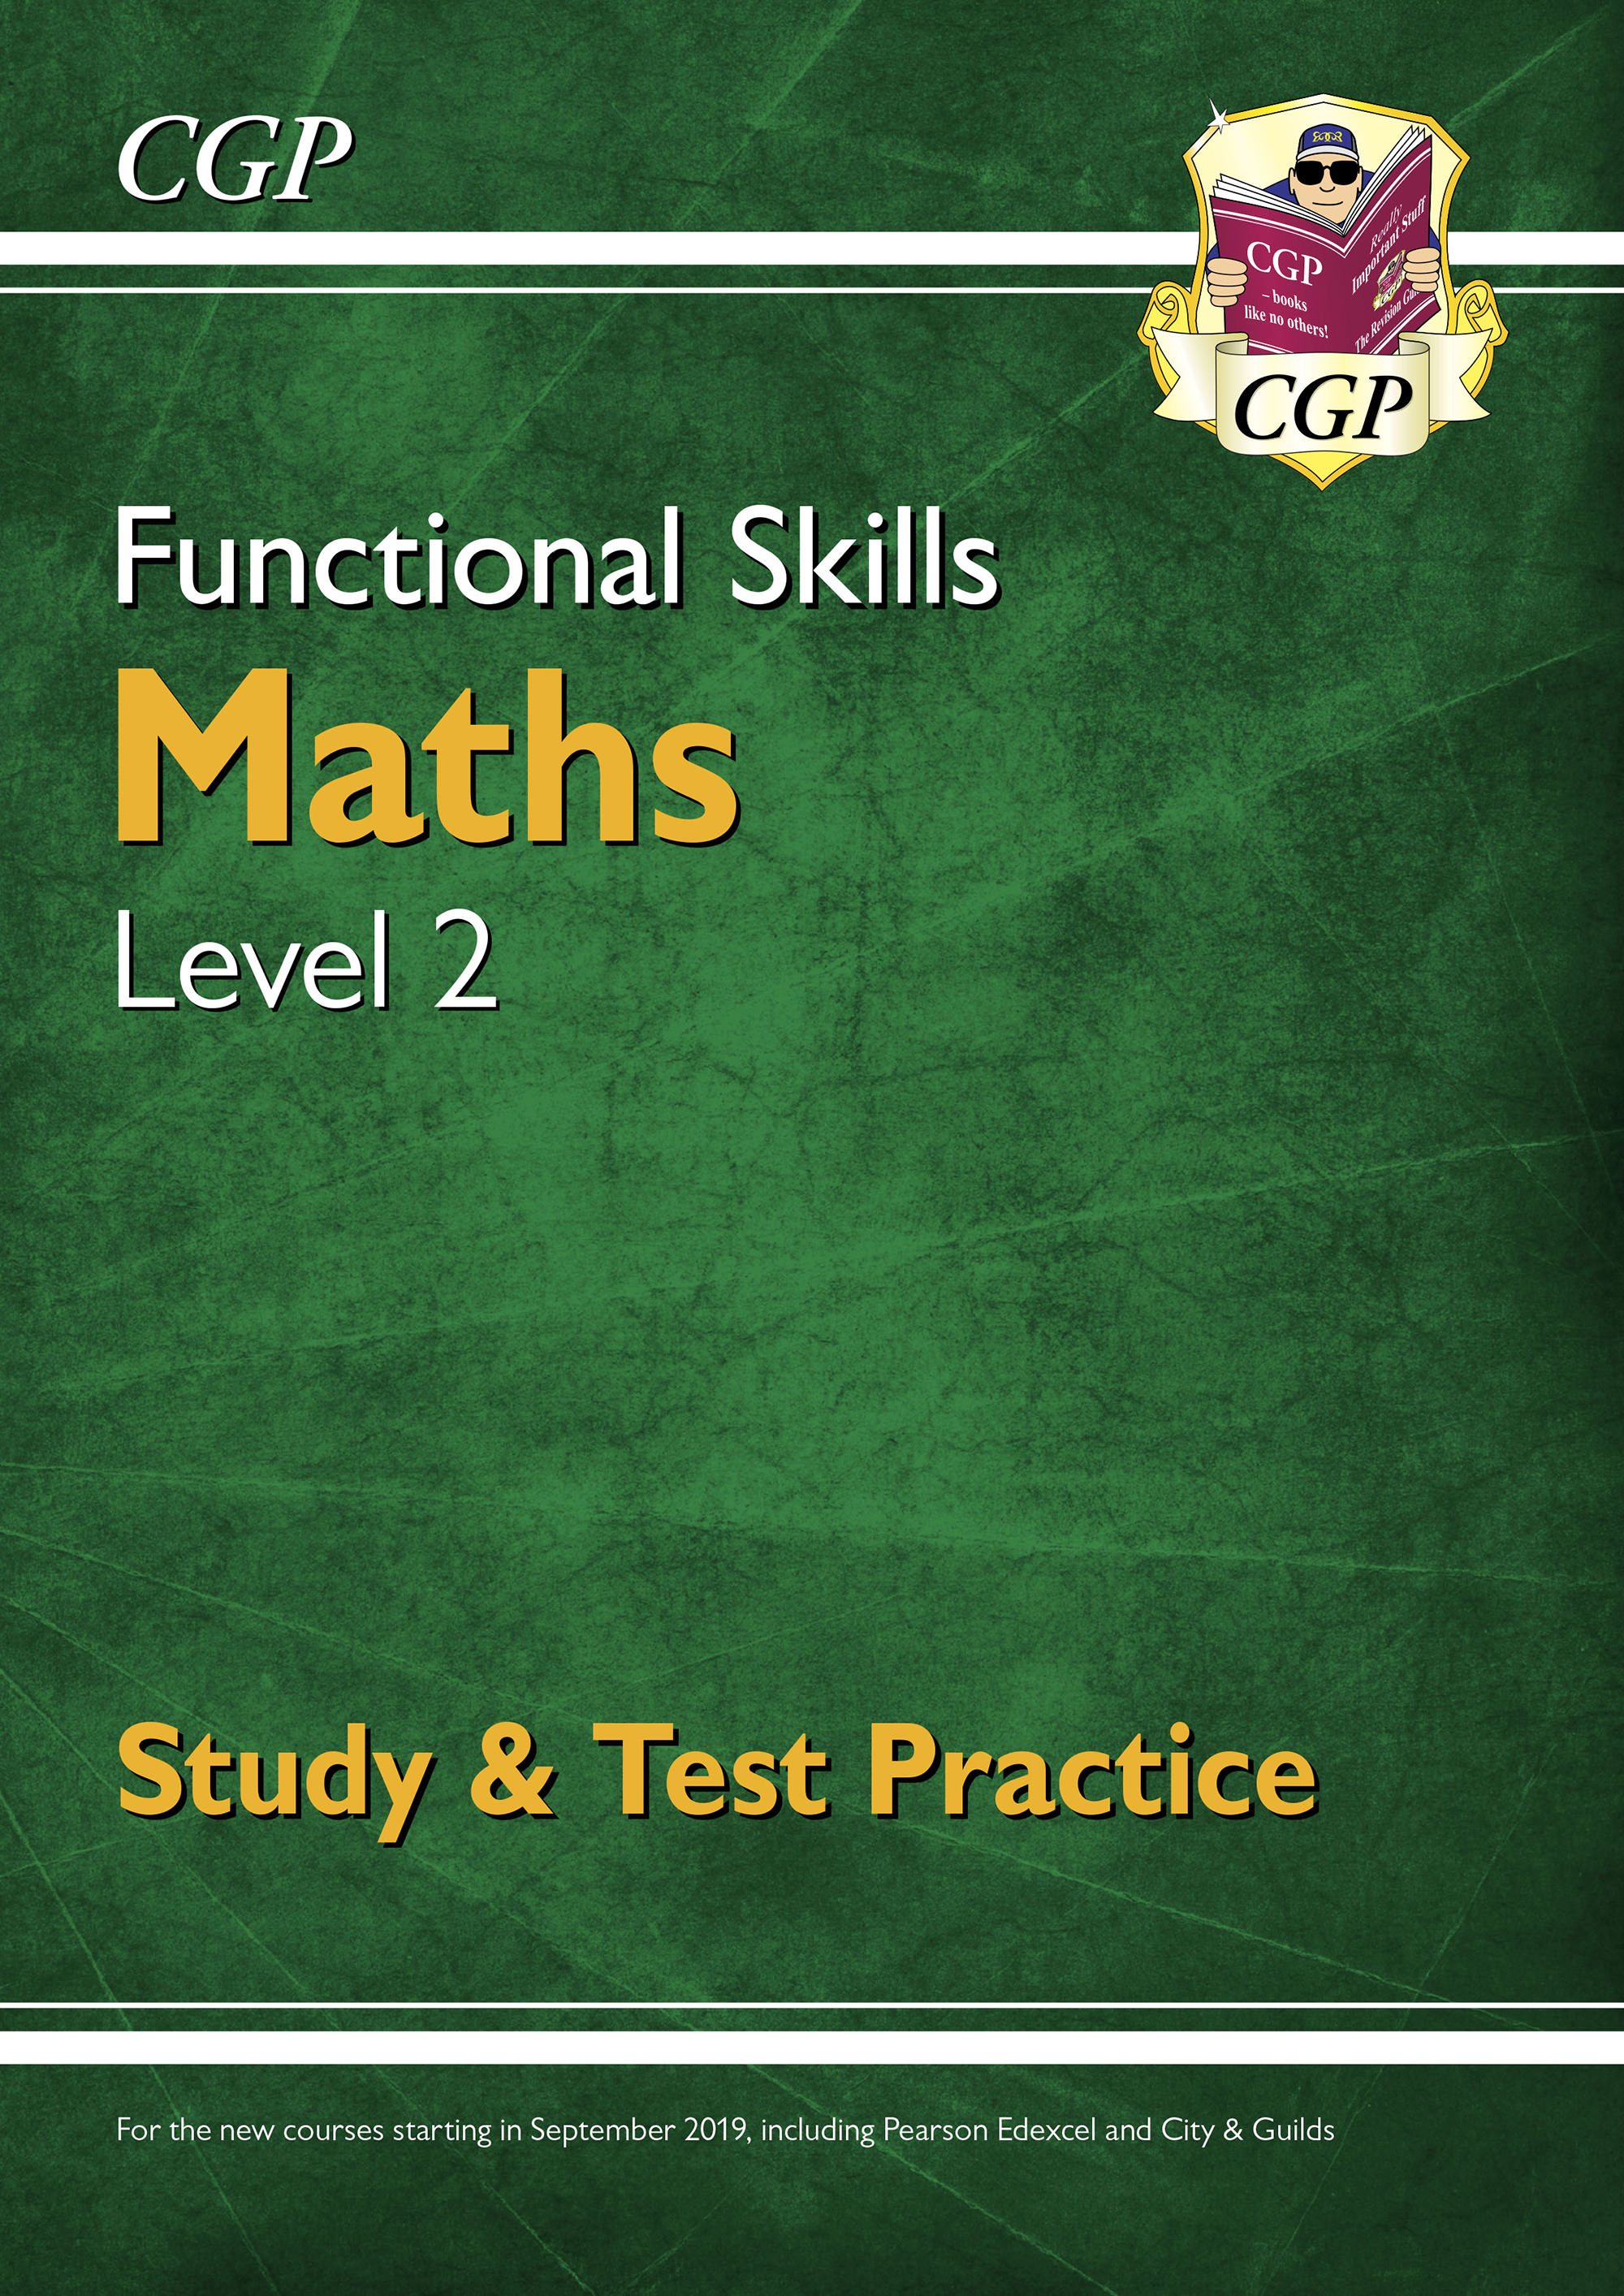 M2SRA3D - New Functional Skills Maths Level 2 - Study & Test Practice (for 2020 & beyond) Online Edi